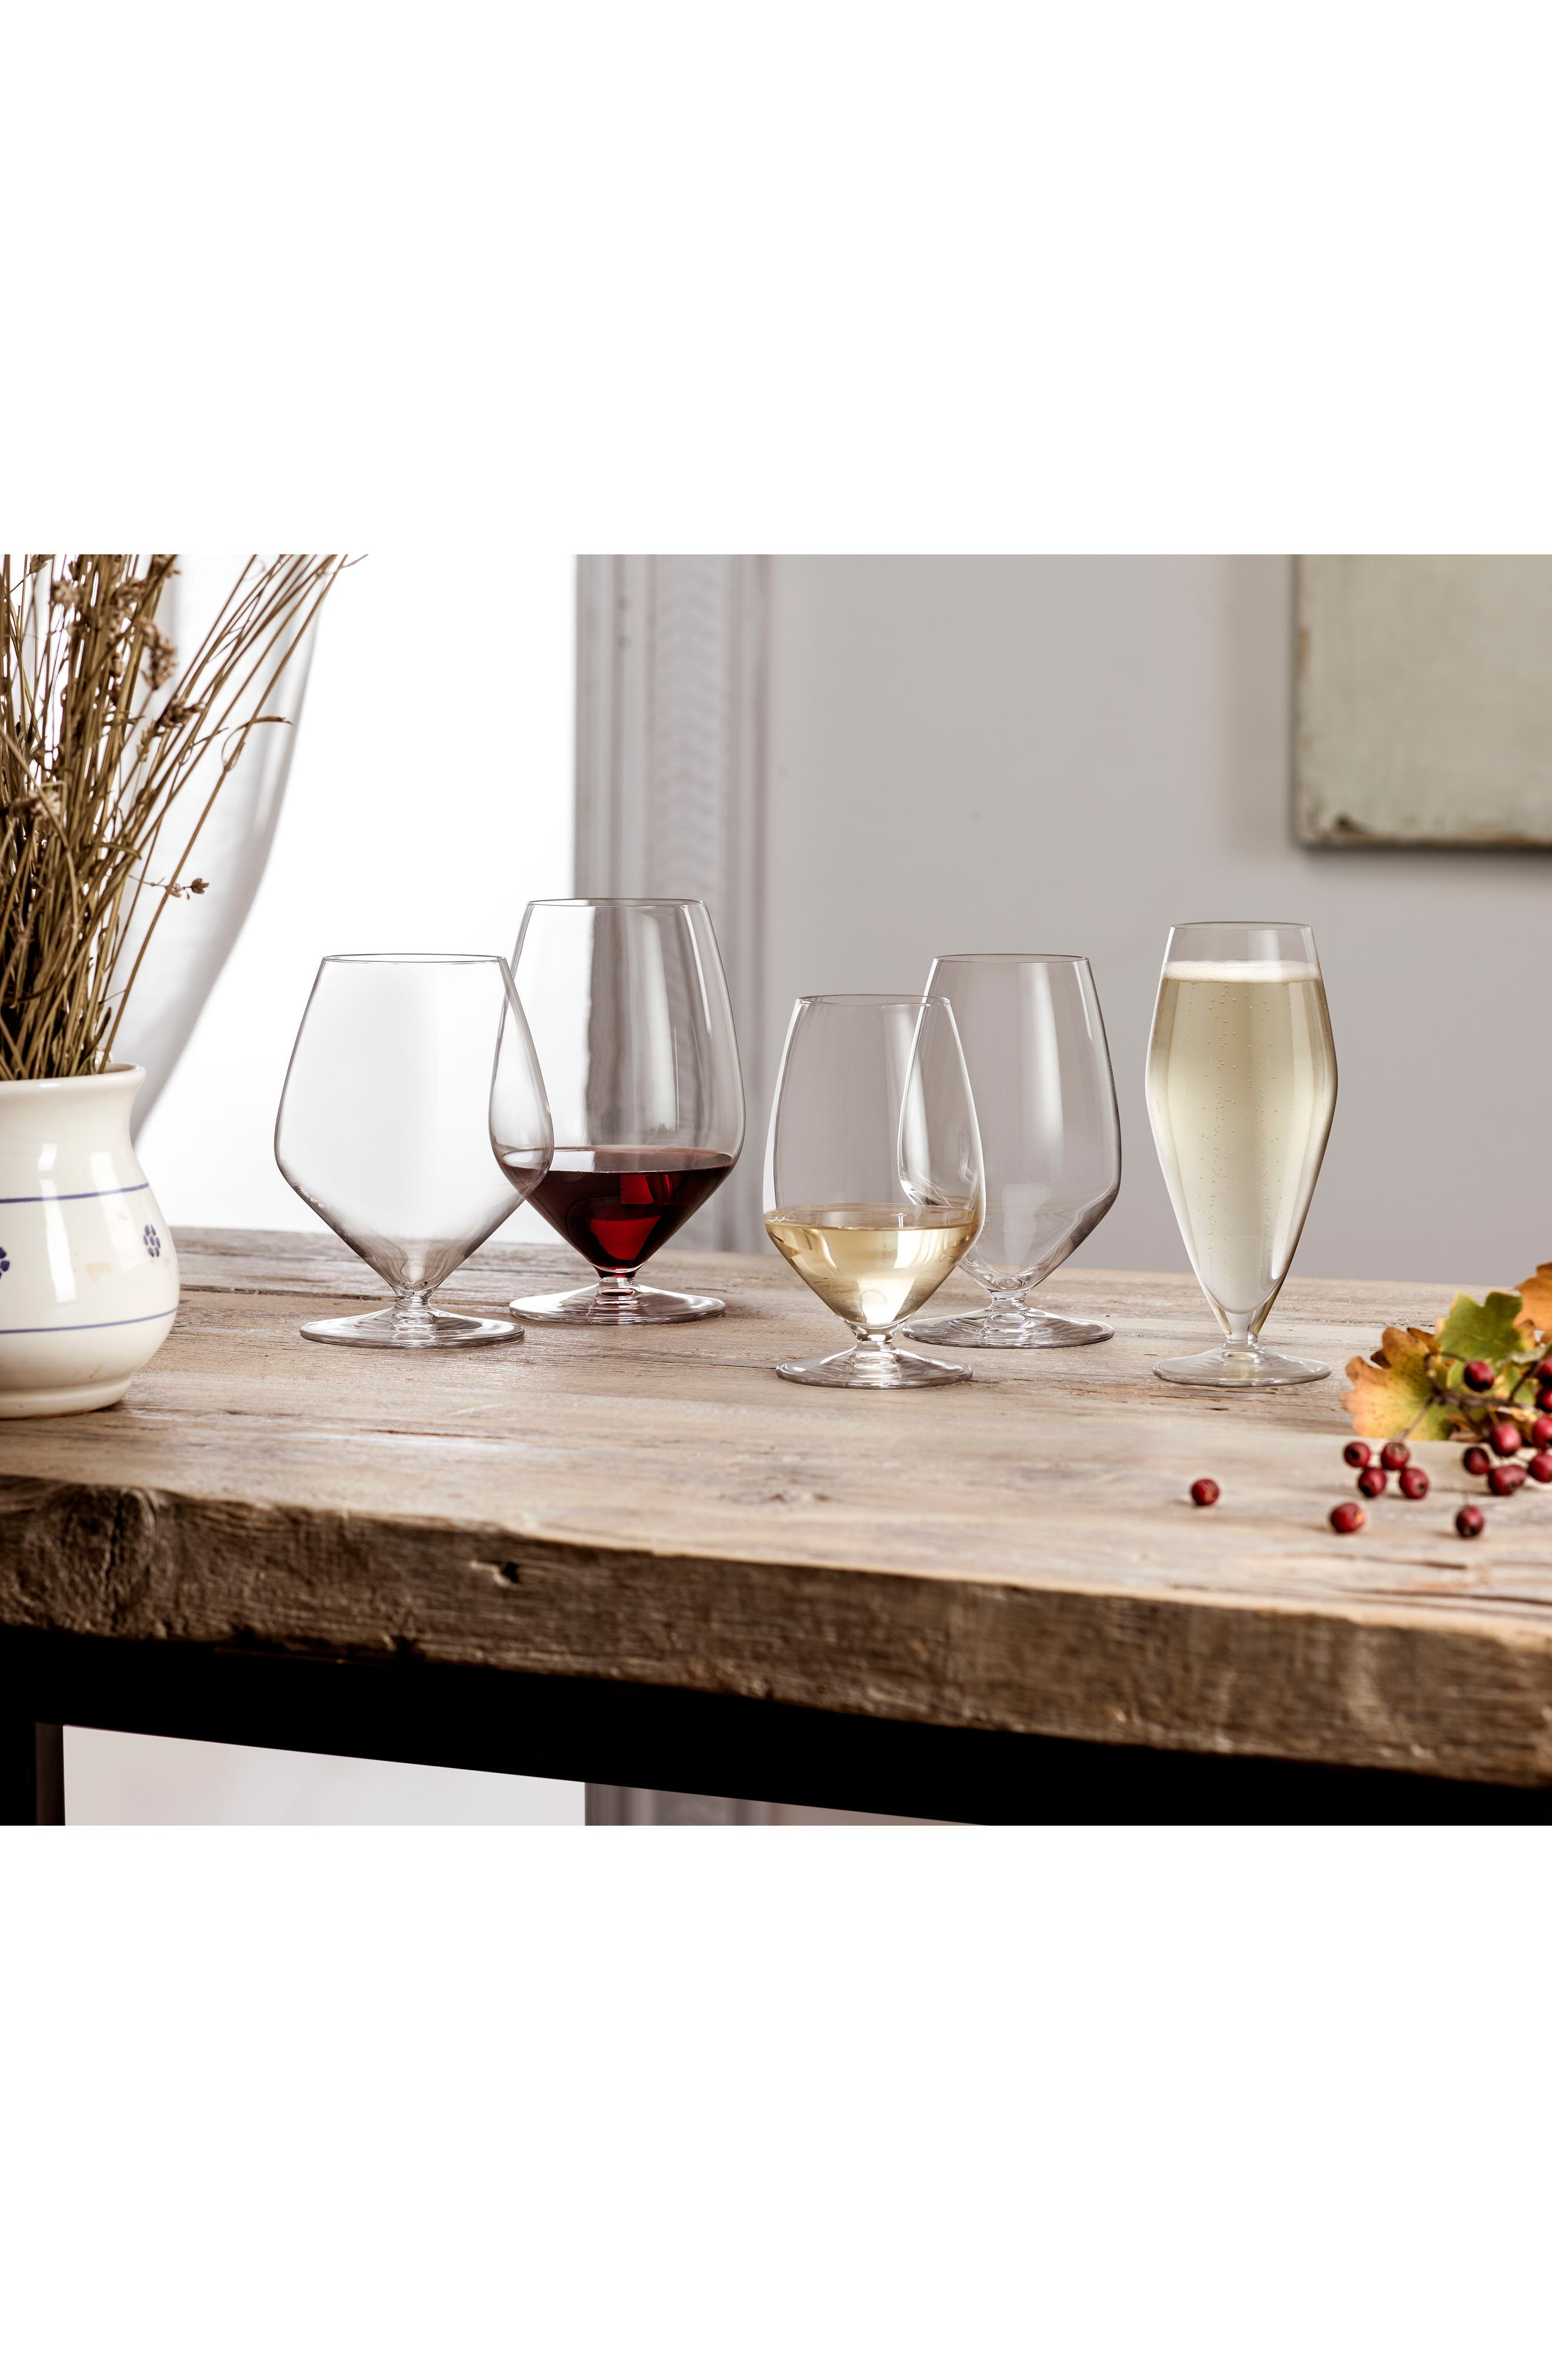 T-Glass Set of 4 Pinot Noir Glasses,                             Alternate thumbnail 2, color,                             CLEAR